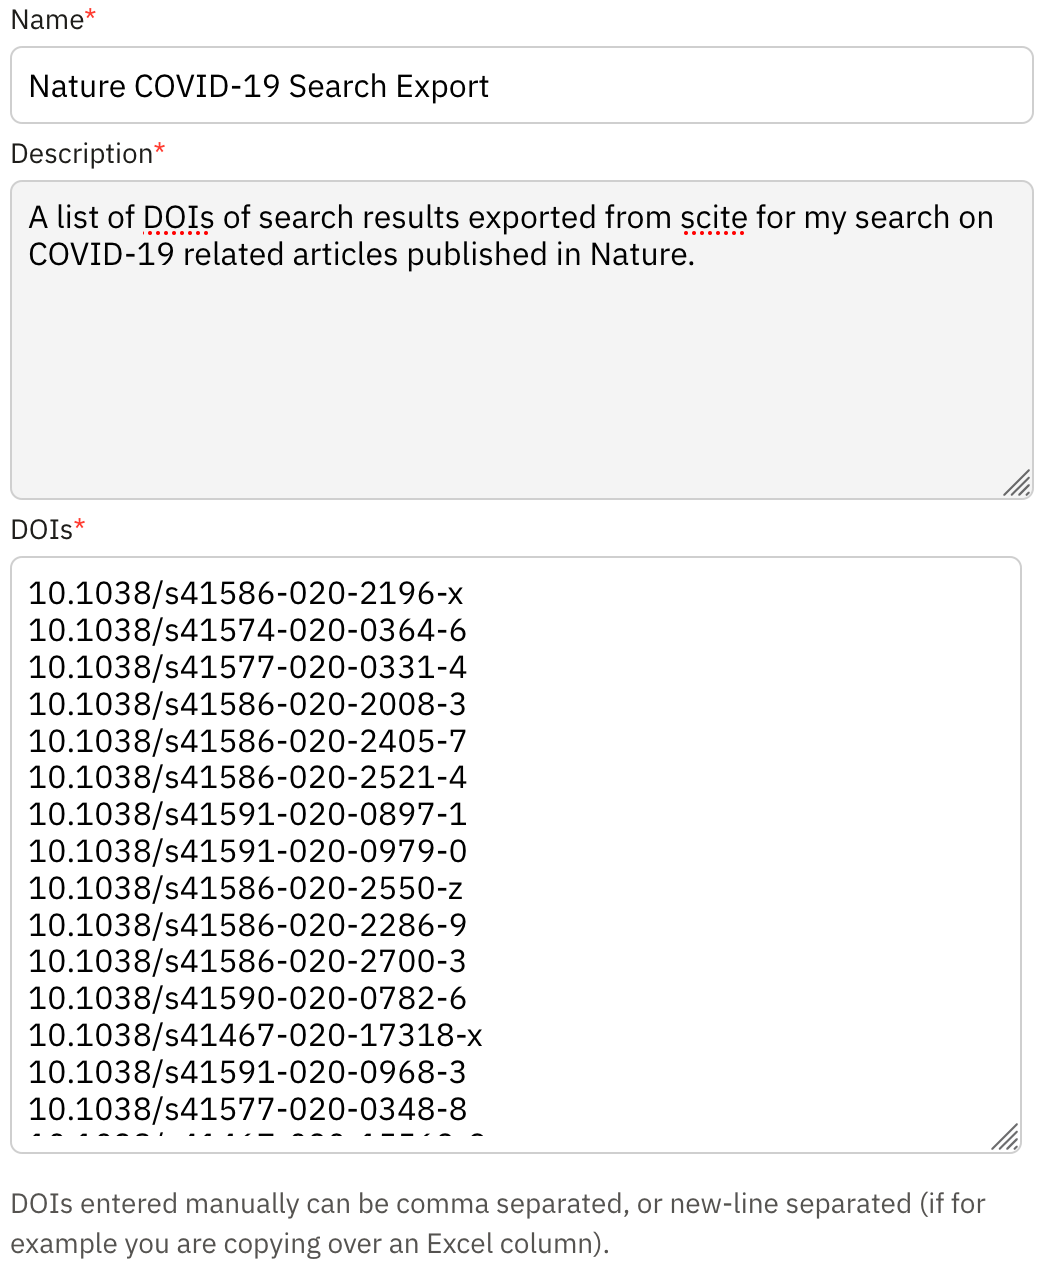 Screenshot from the Create Custom Dashboard form filled out with the DOIs from our exported search results. Note that the DOIs can be either comma separated or new-line separated.